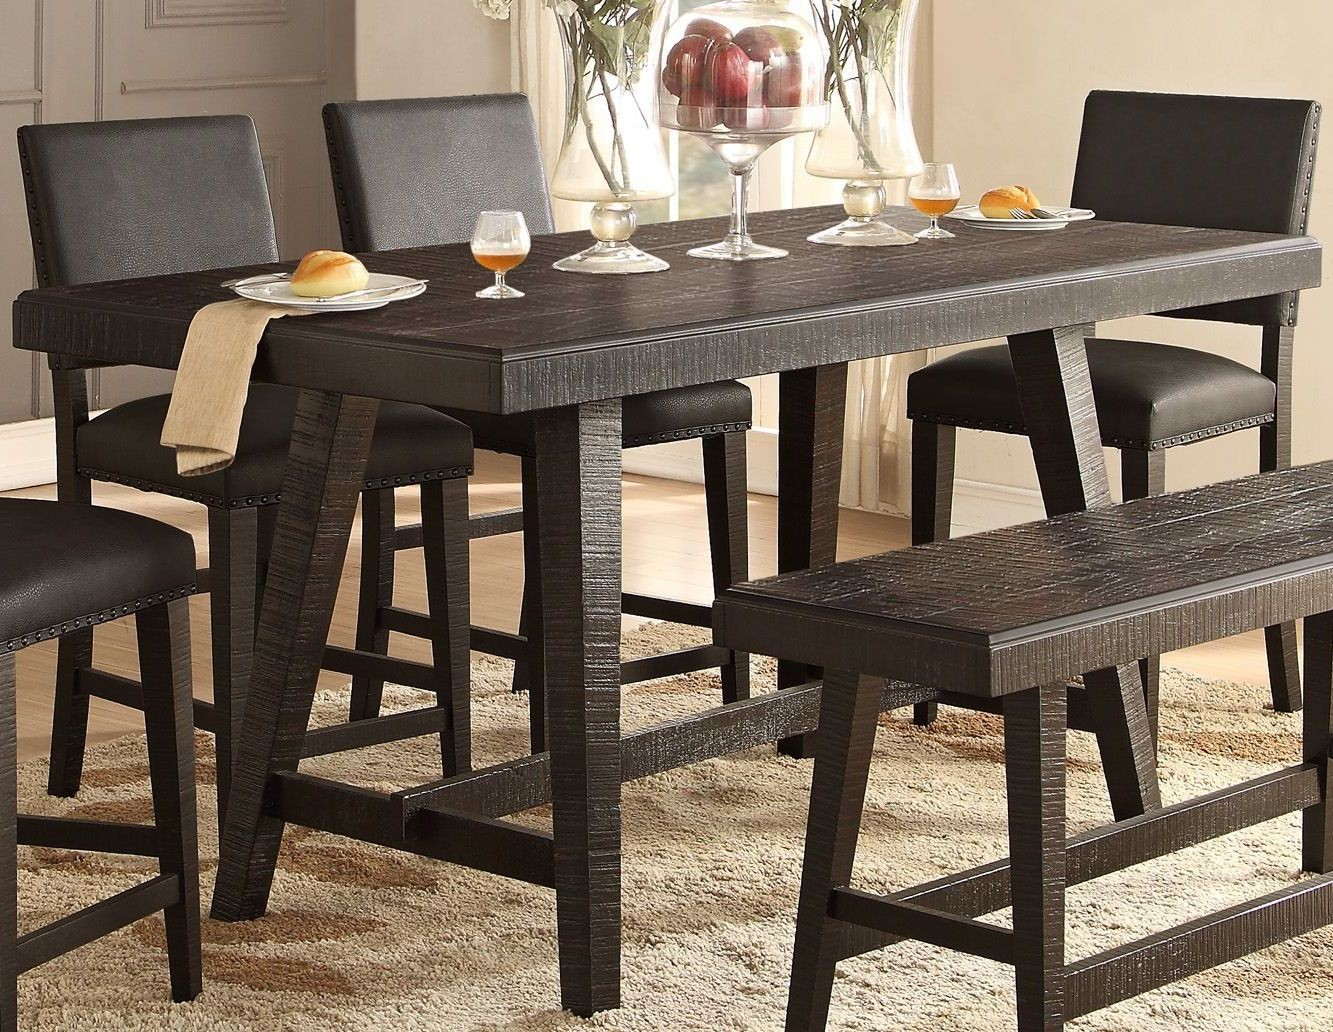 fenwick table